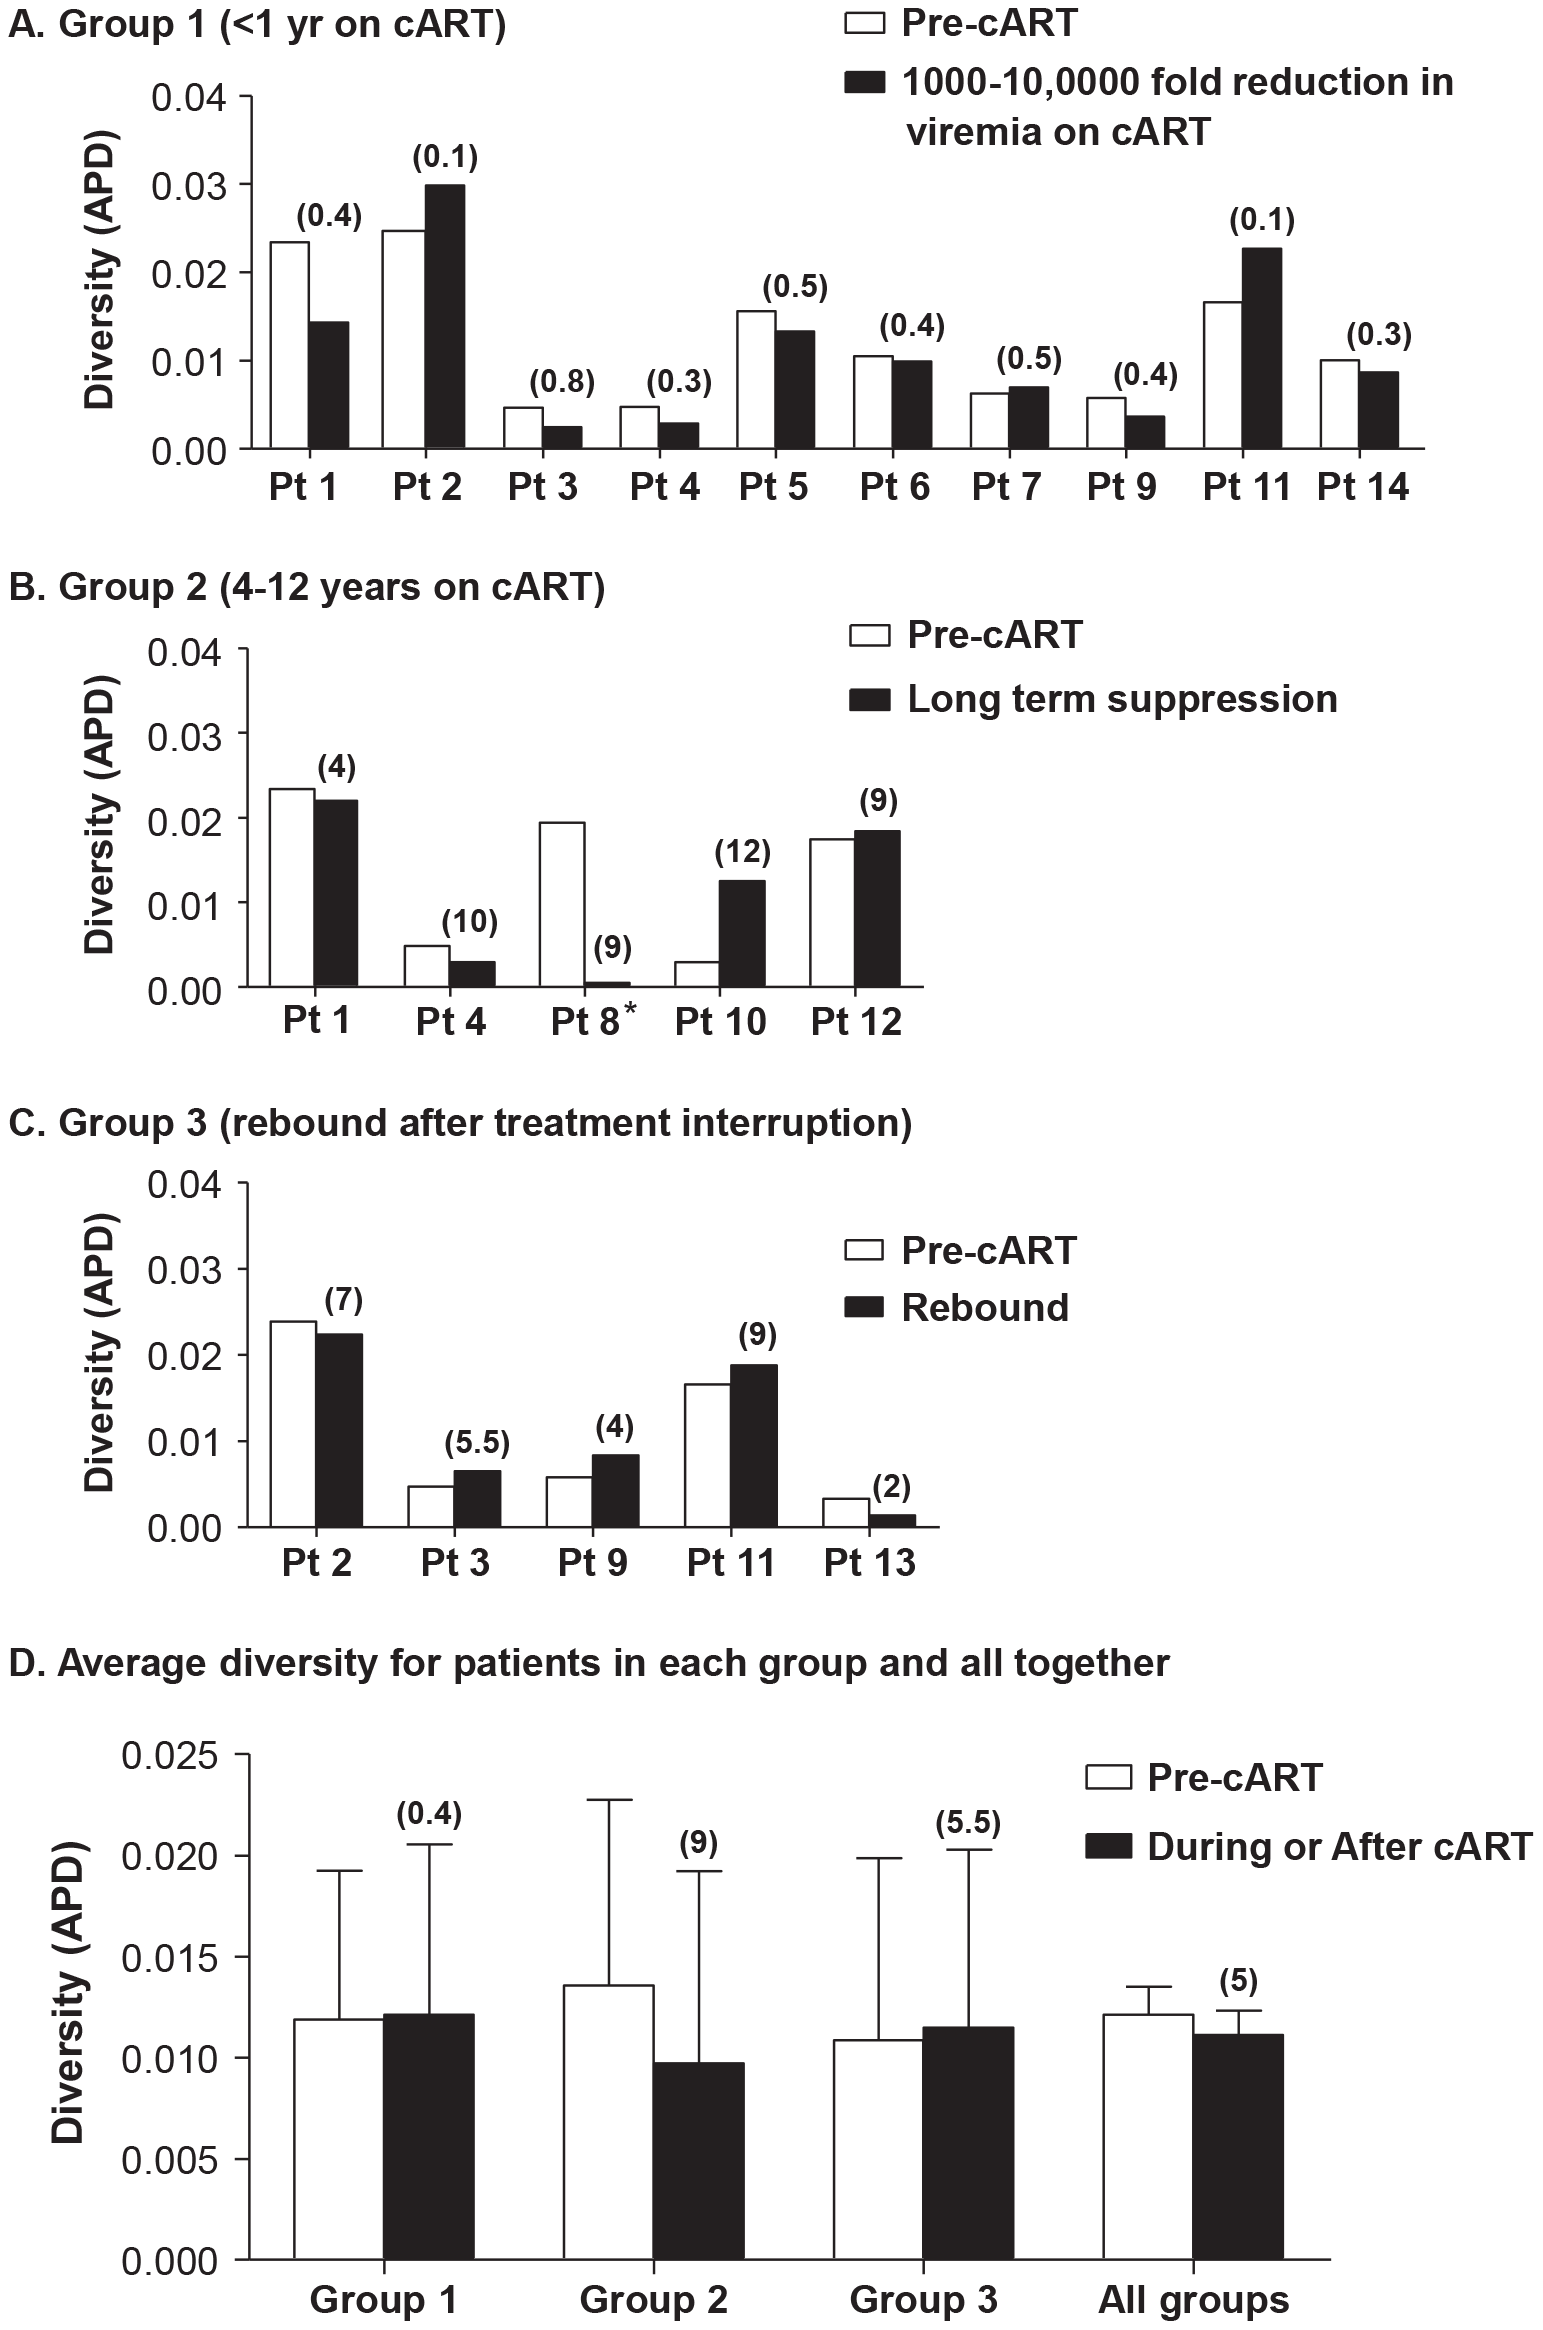 Measurements of HIV-1 diversity calculated as APD before, during and/or after cART in all patients in (A) Group 1 - short-term cART (B) Group 2 - long-term cART (C) Group 3 - cART with treatment interruptions and (D) the average of all groups.